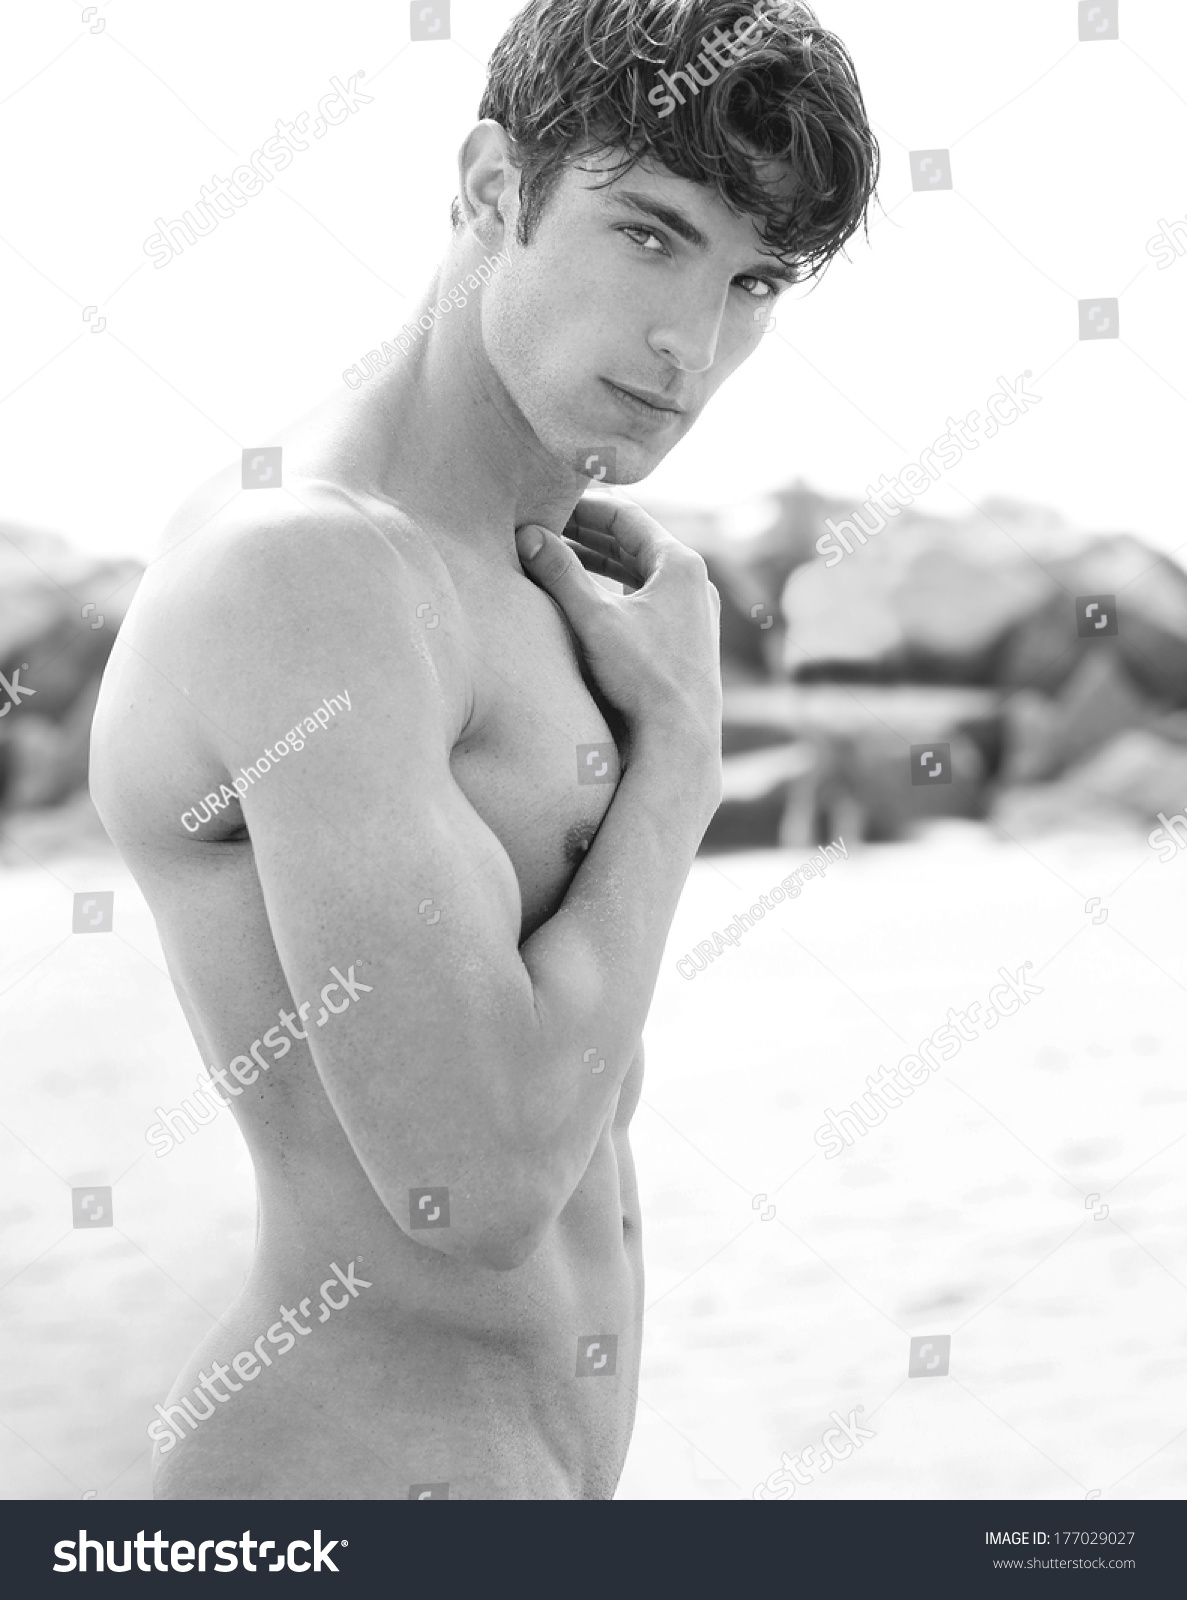 young nude model Beautiful outdoor fine art portrait of a young nude male model